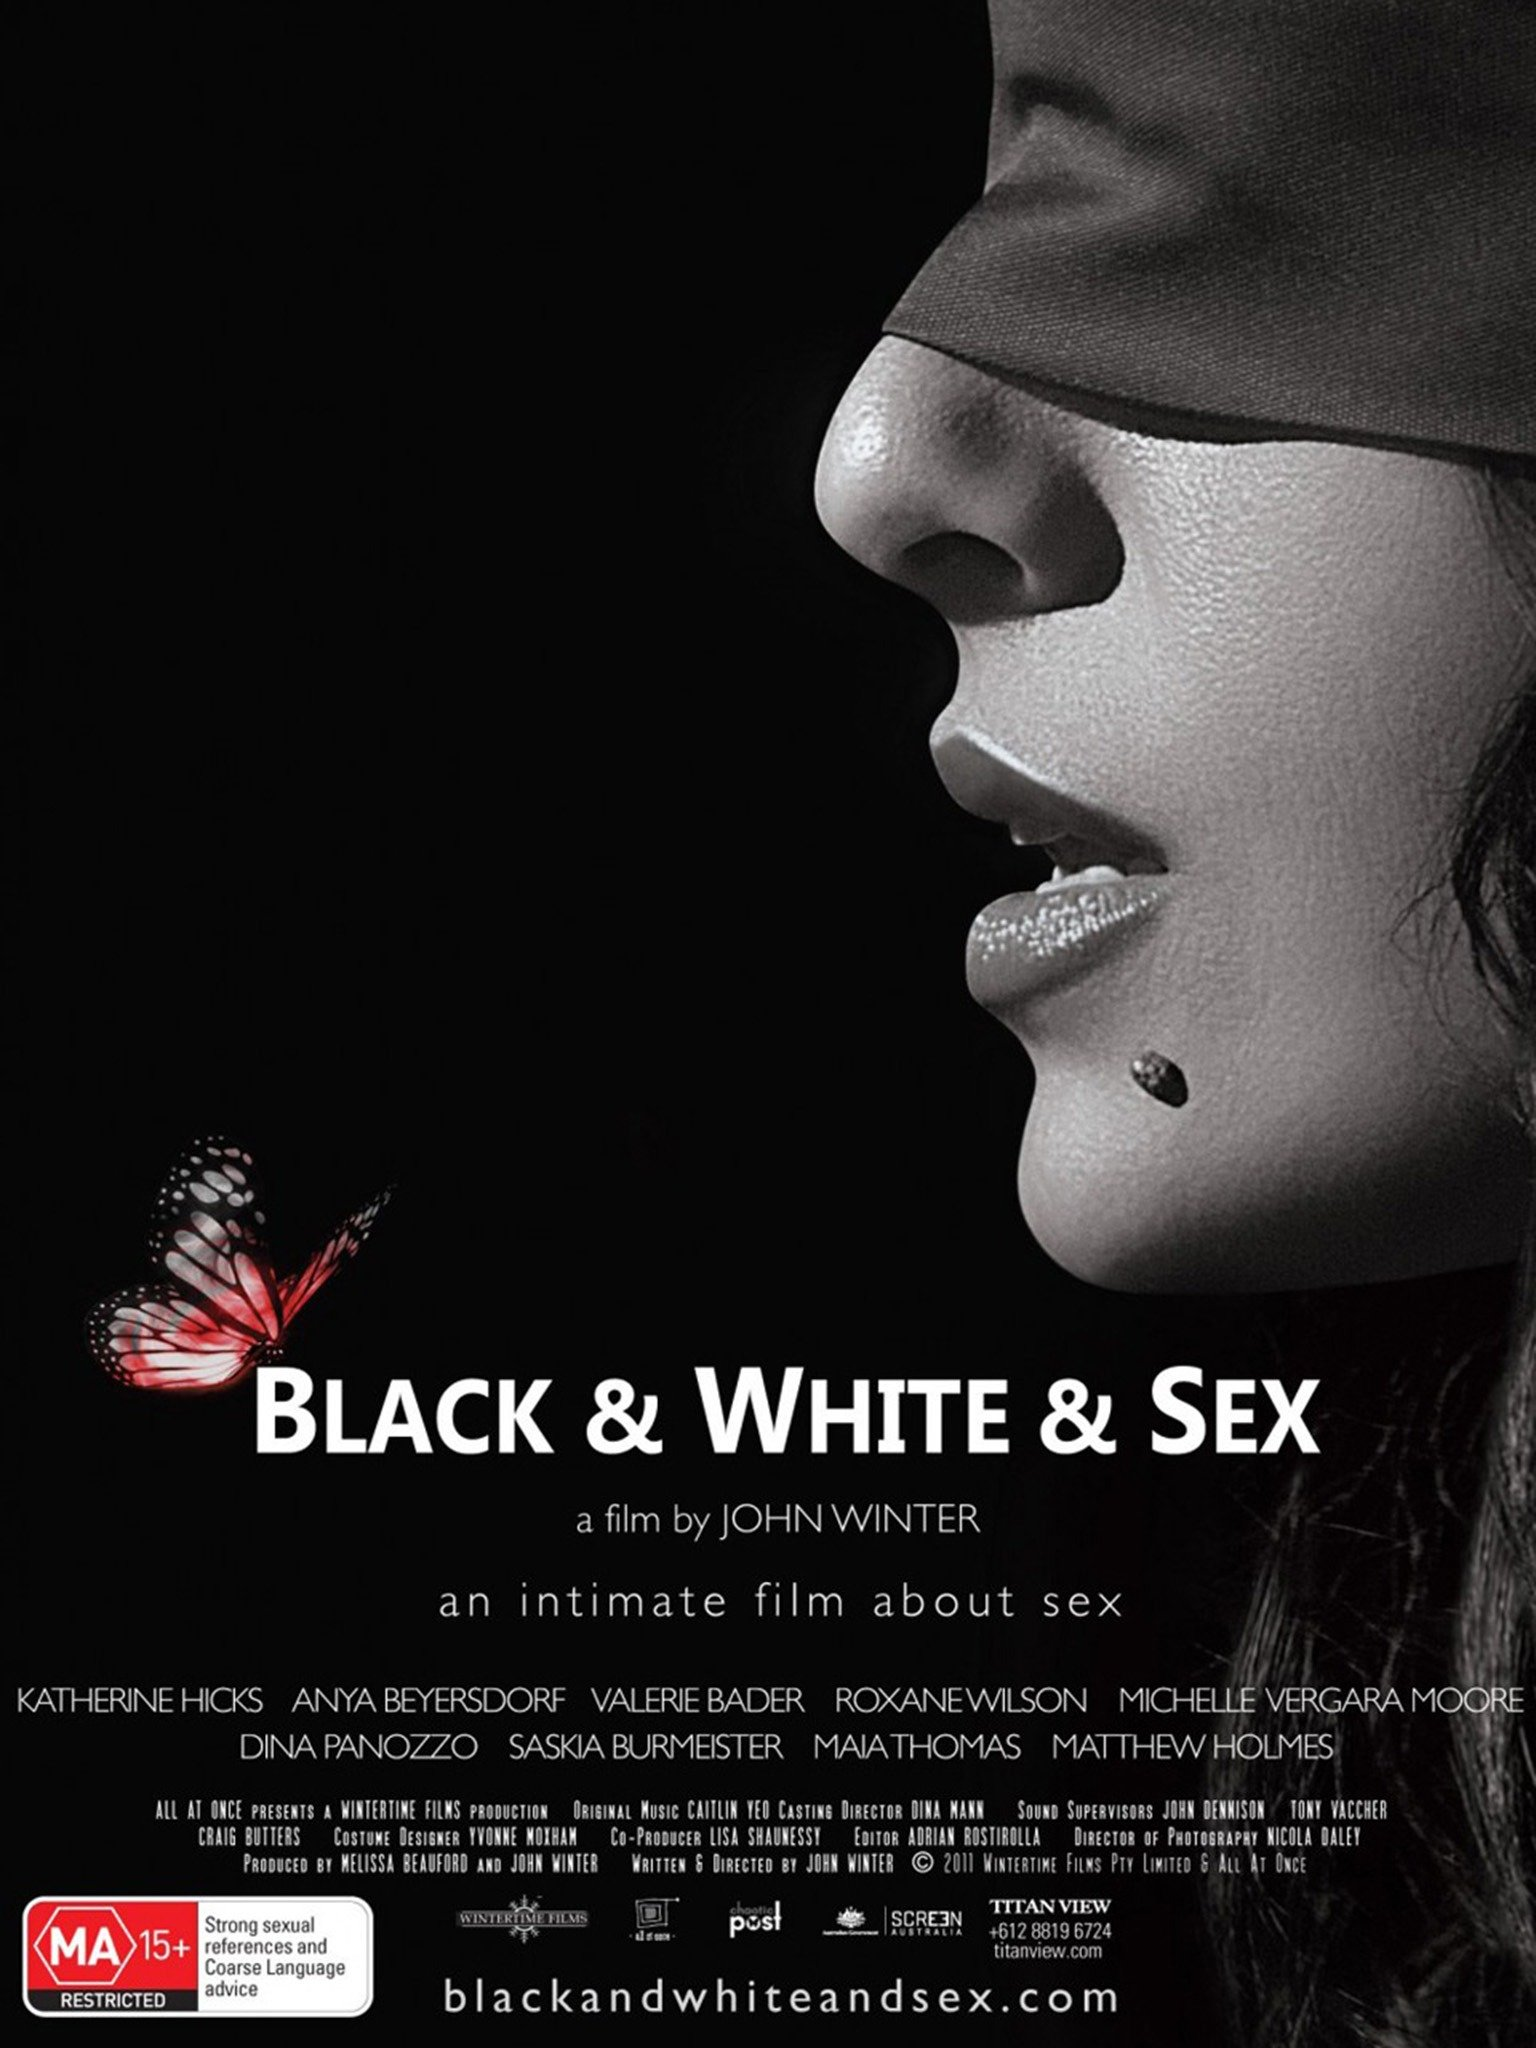 Between and sex black white What is